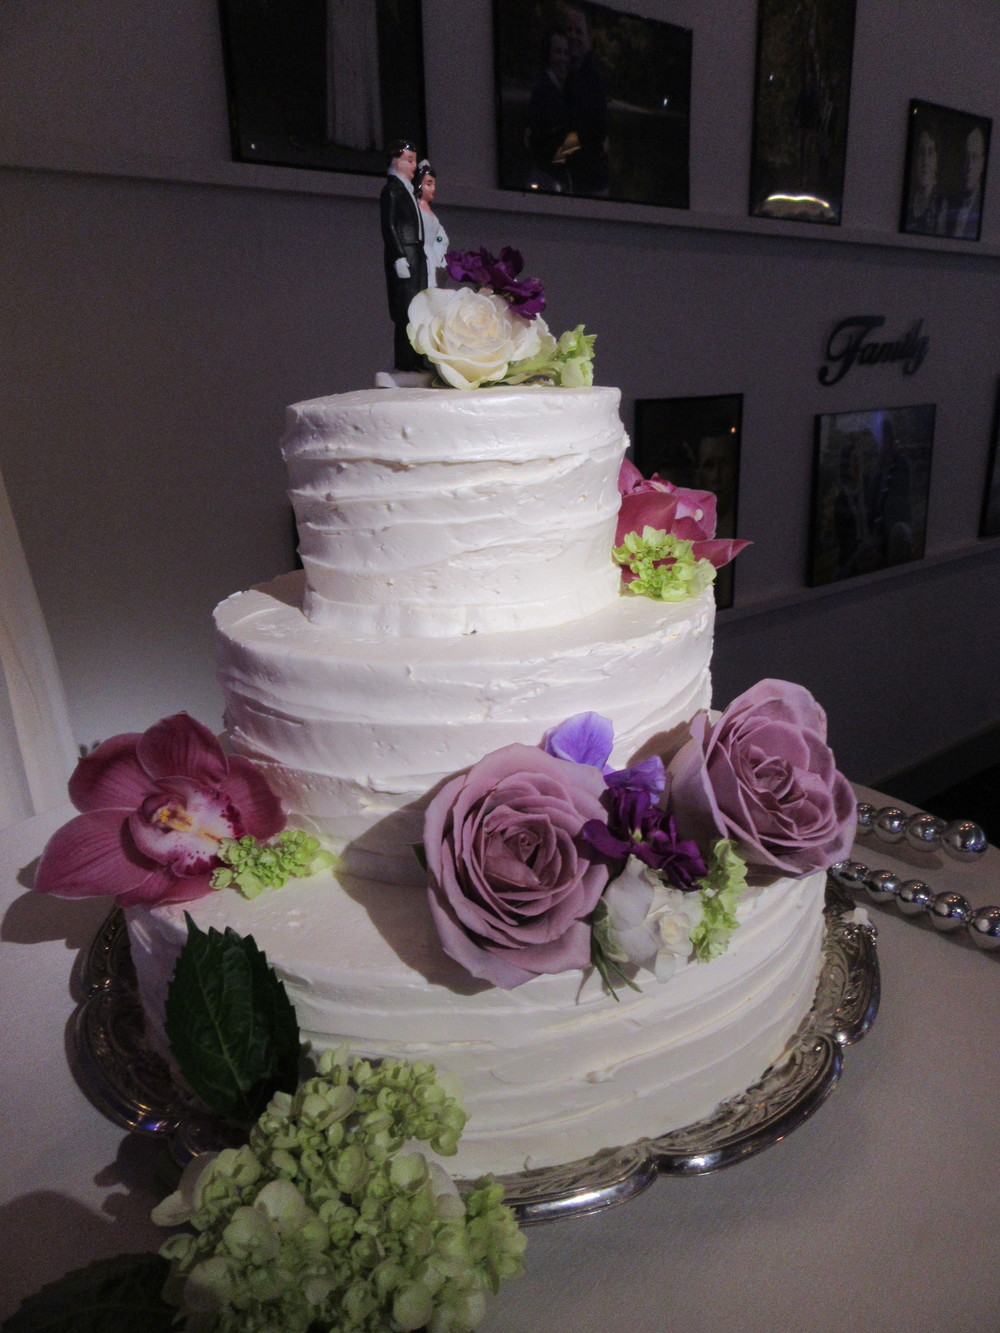 Chef O'dille creates your dream wedding cake